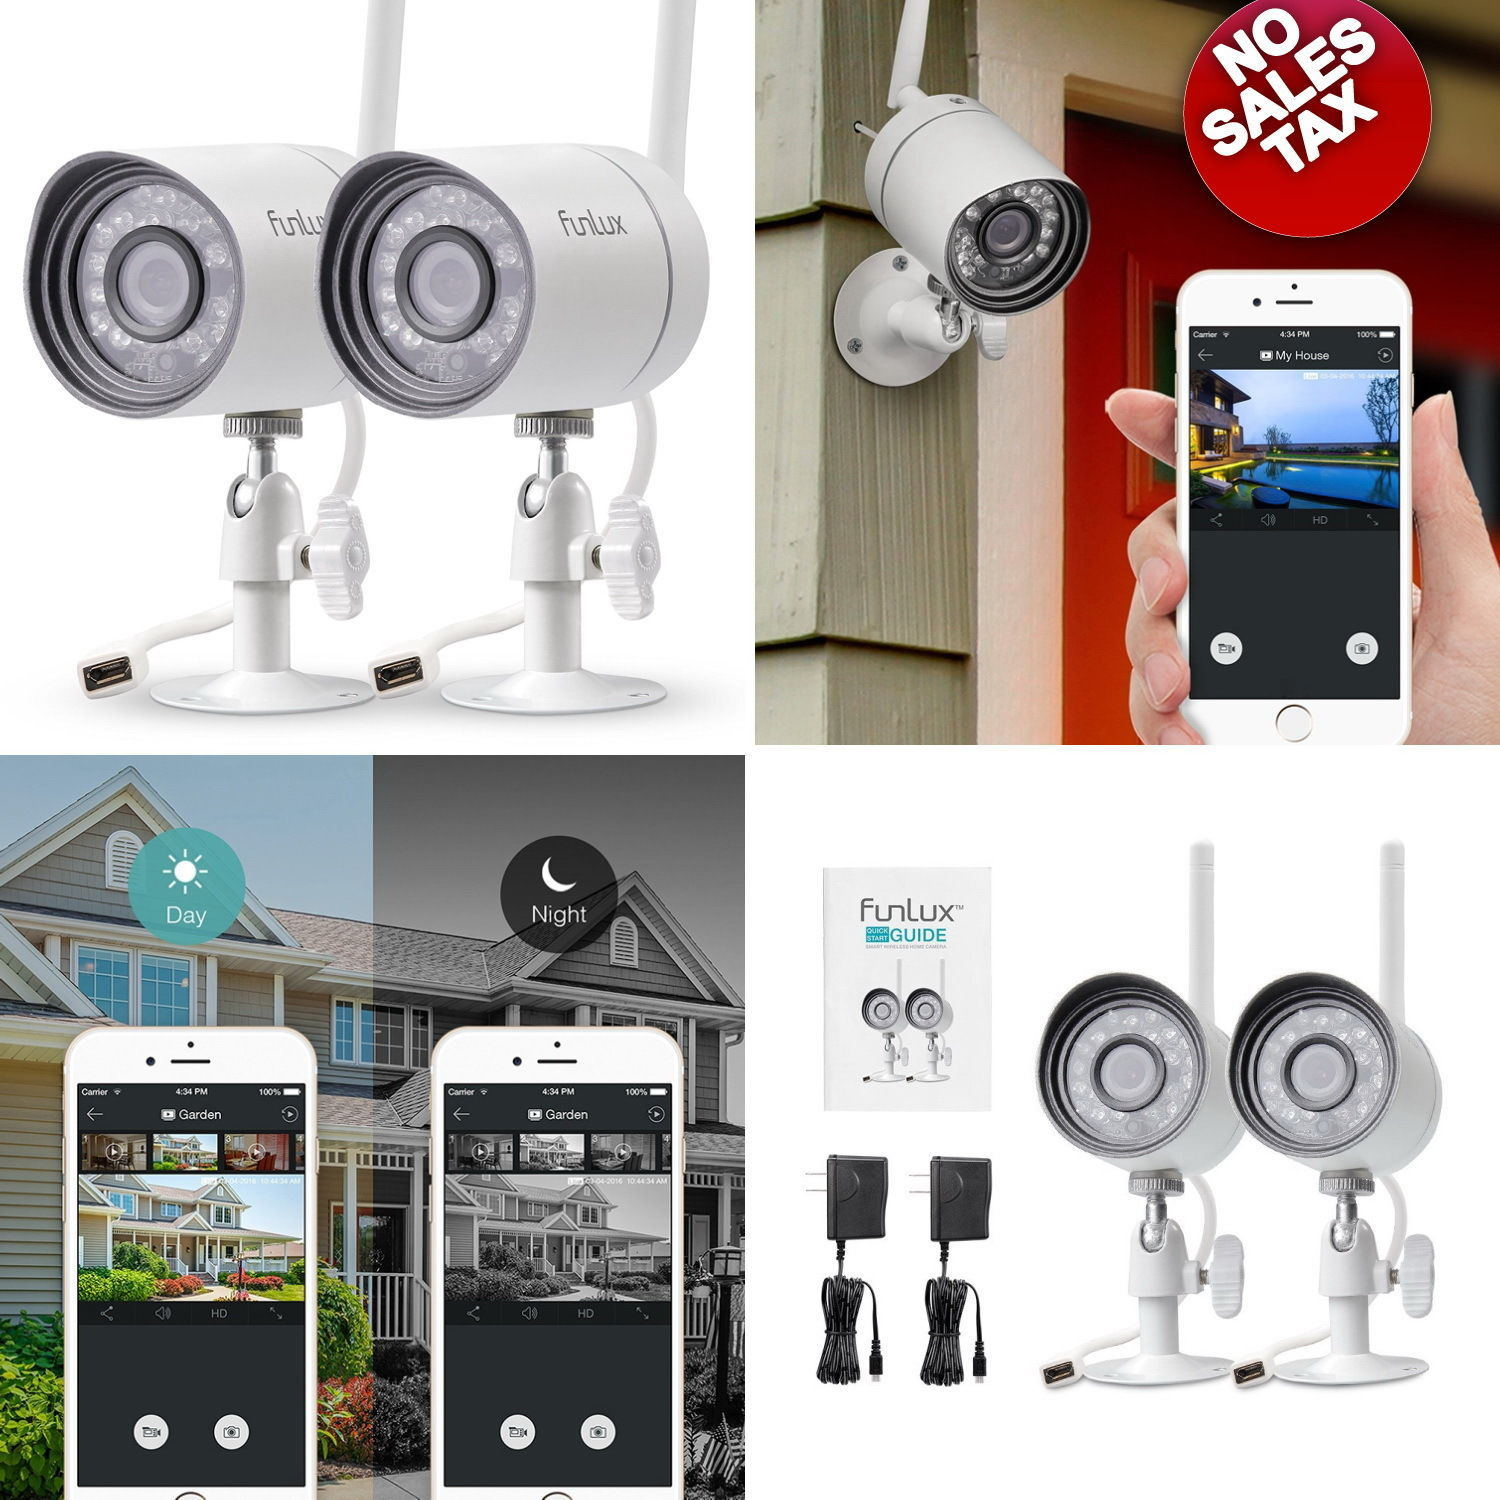 Home Wireless Security Video Camera Surveillance 720 HD Night Vision App 2 Pack for sale  USA